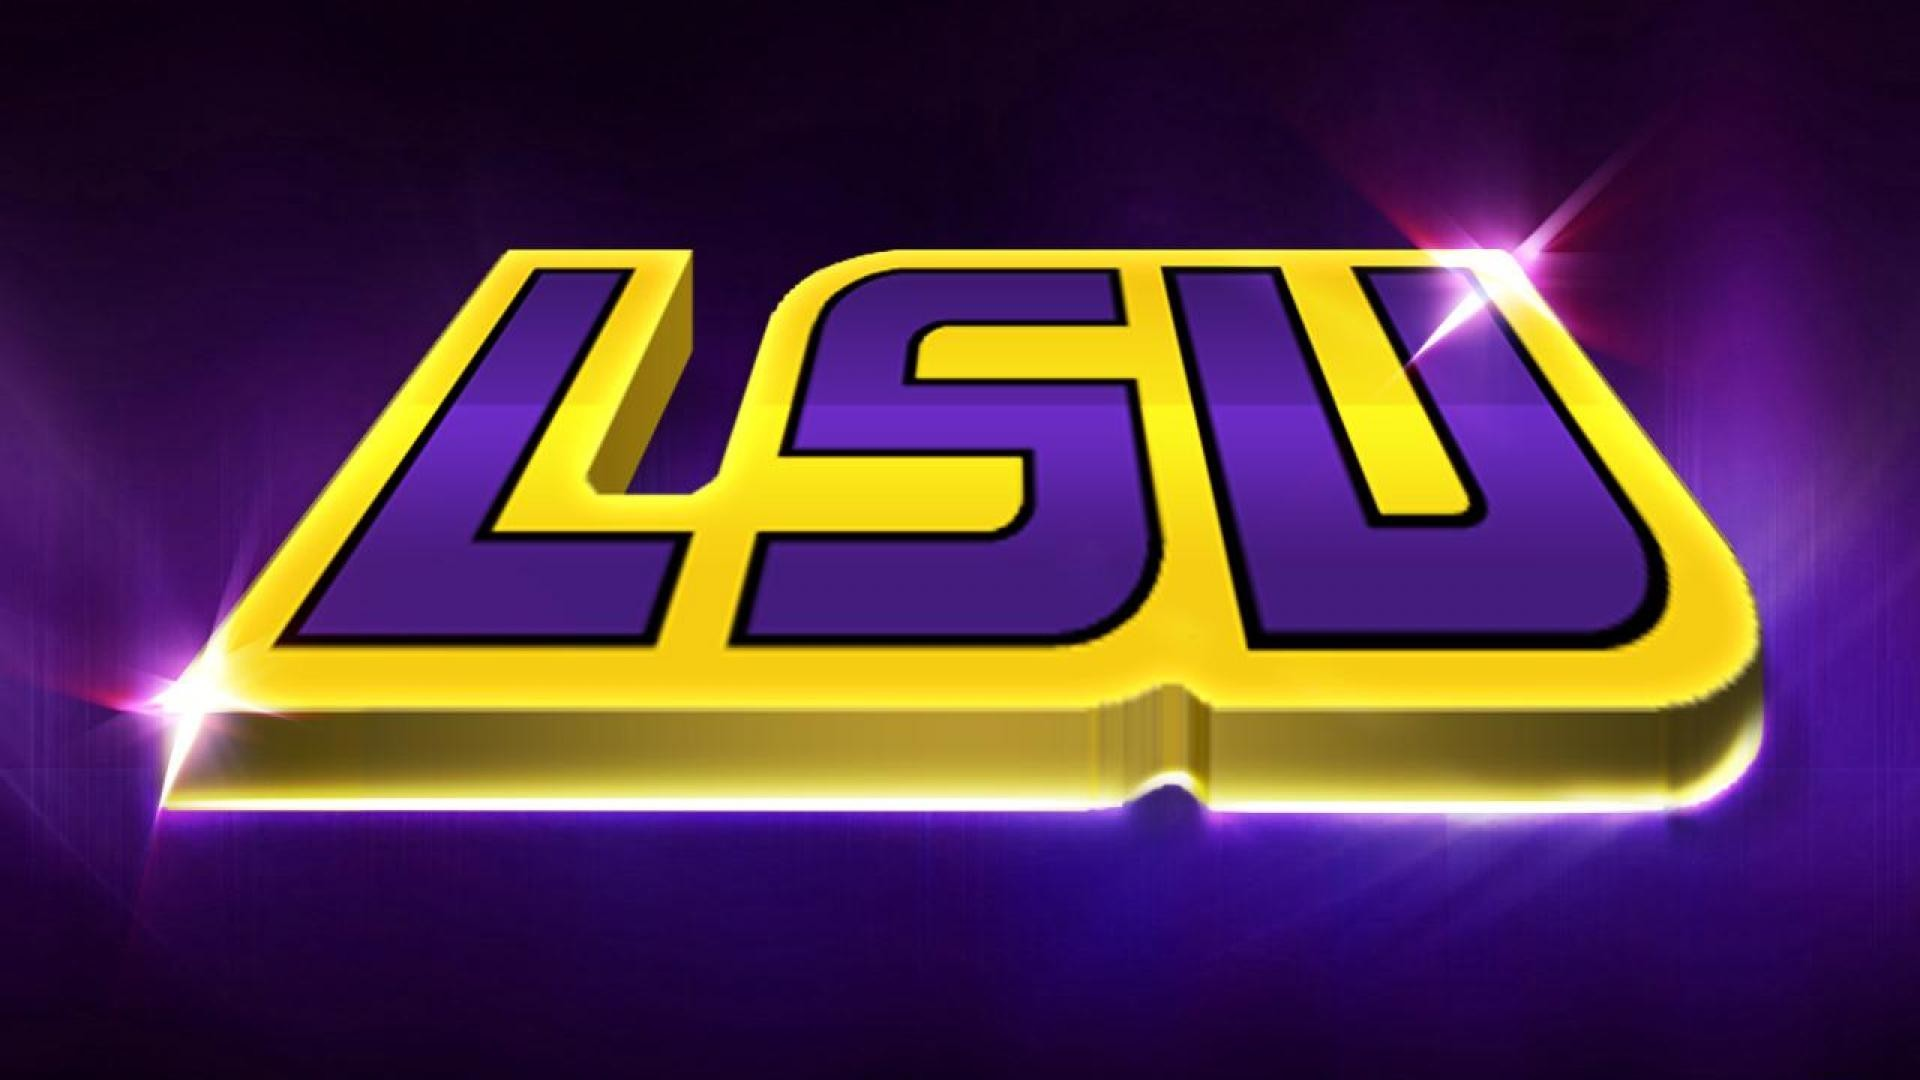 1920x1080 wallpaper.wiki-Wallpaper-hd-lsu-tigers-logo-PIC-